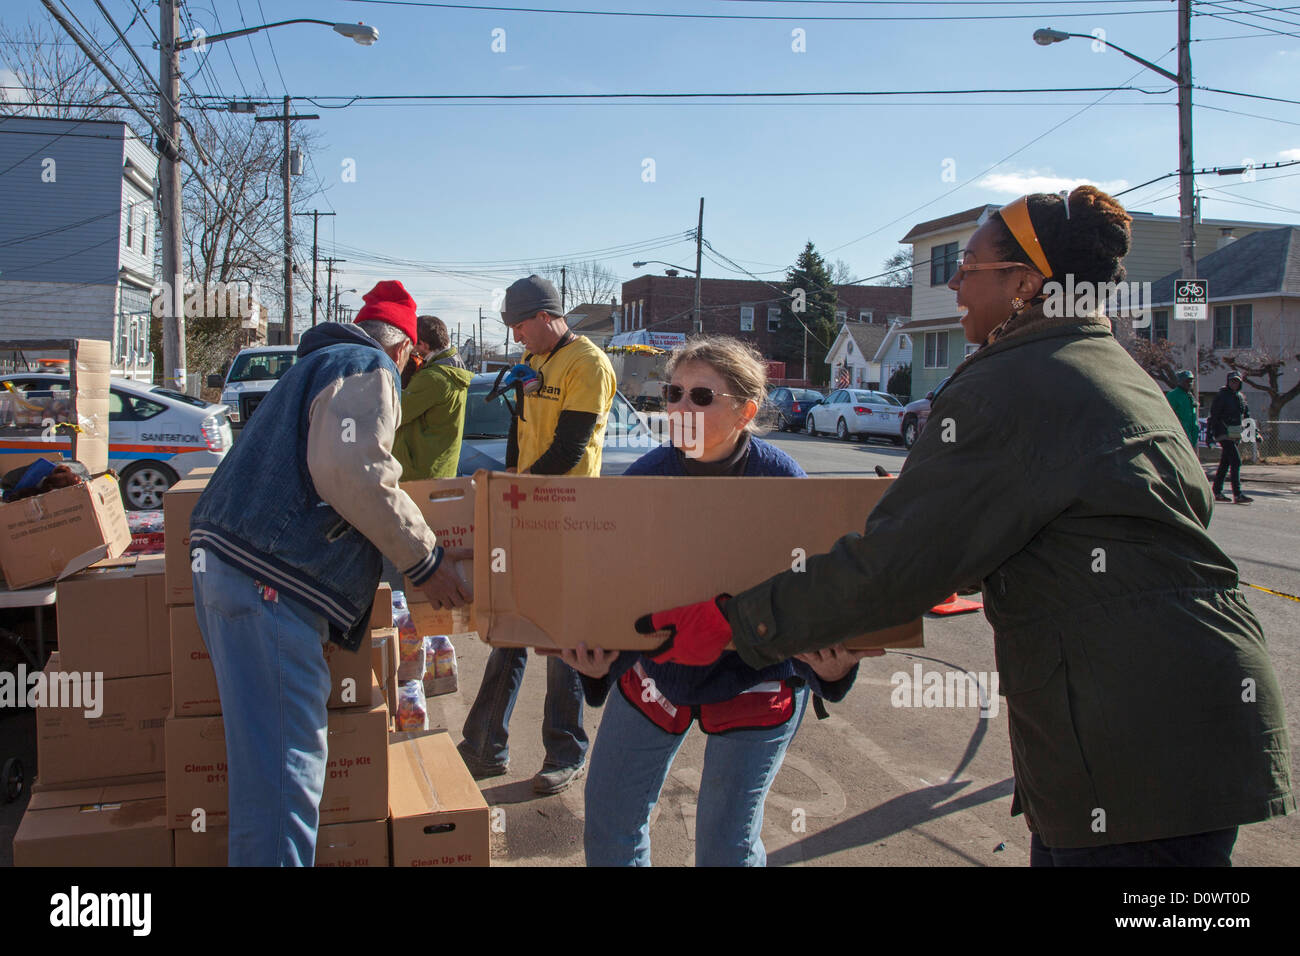 New York, NY - Volunteers on Staten Island help with the recovery from Hurricane Sandy. Stock Photo